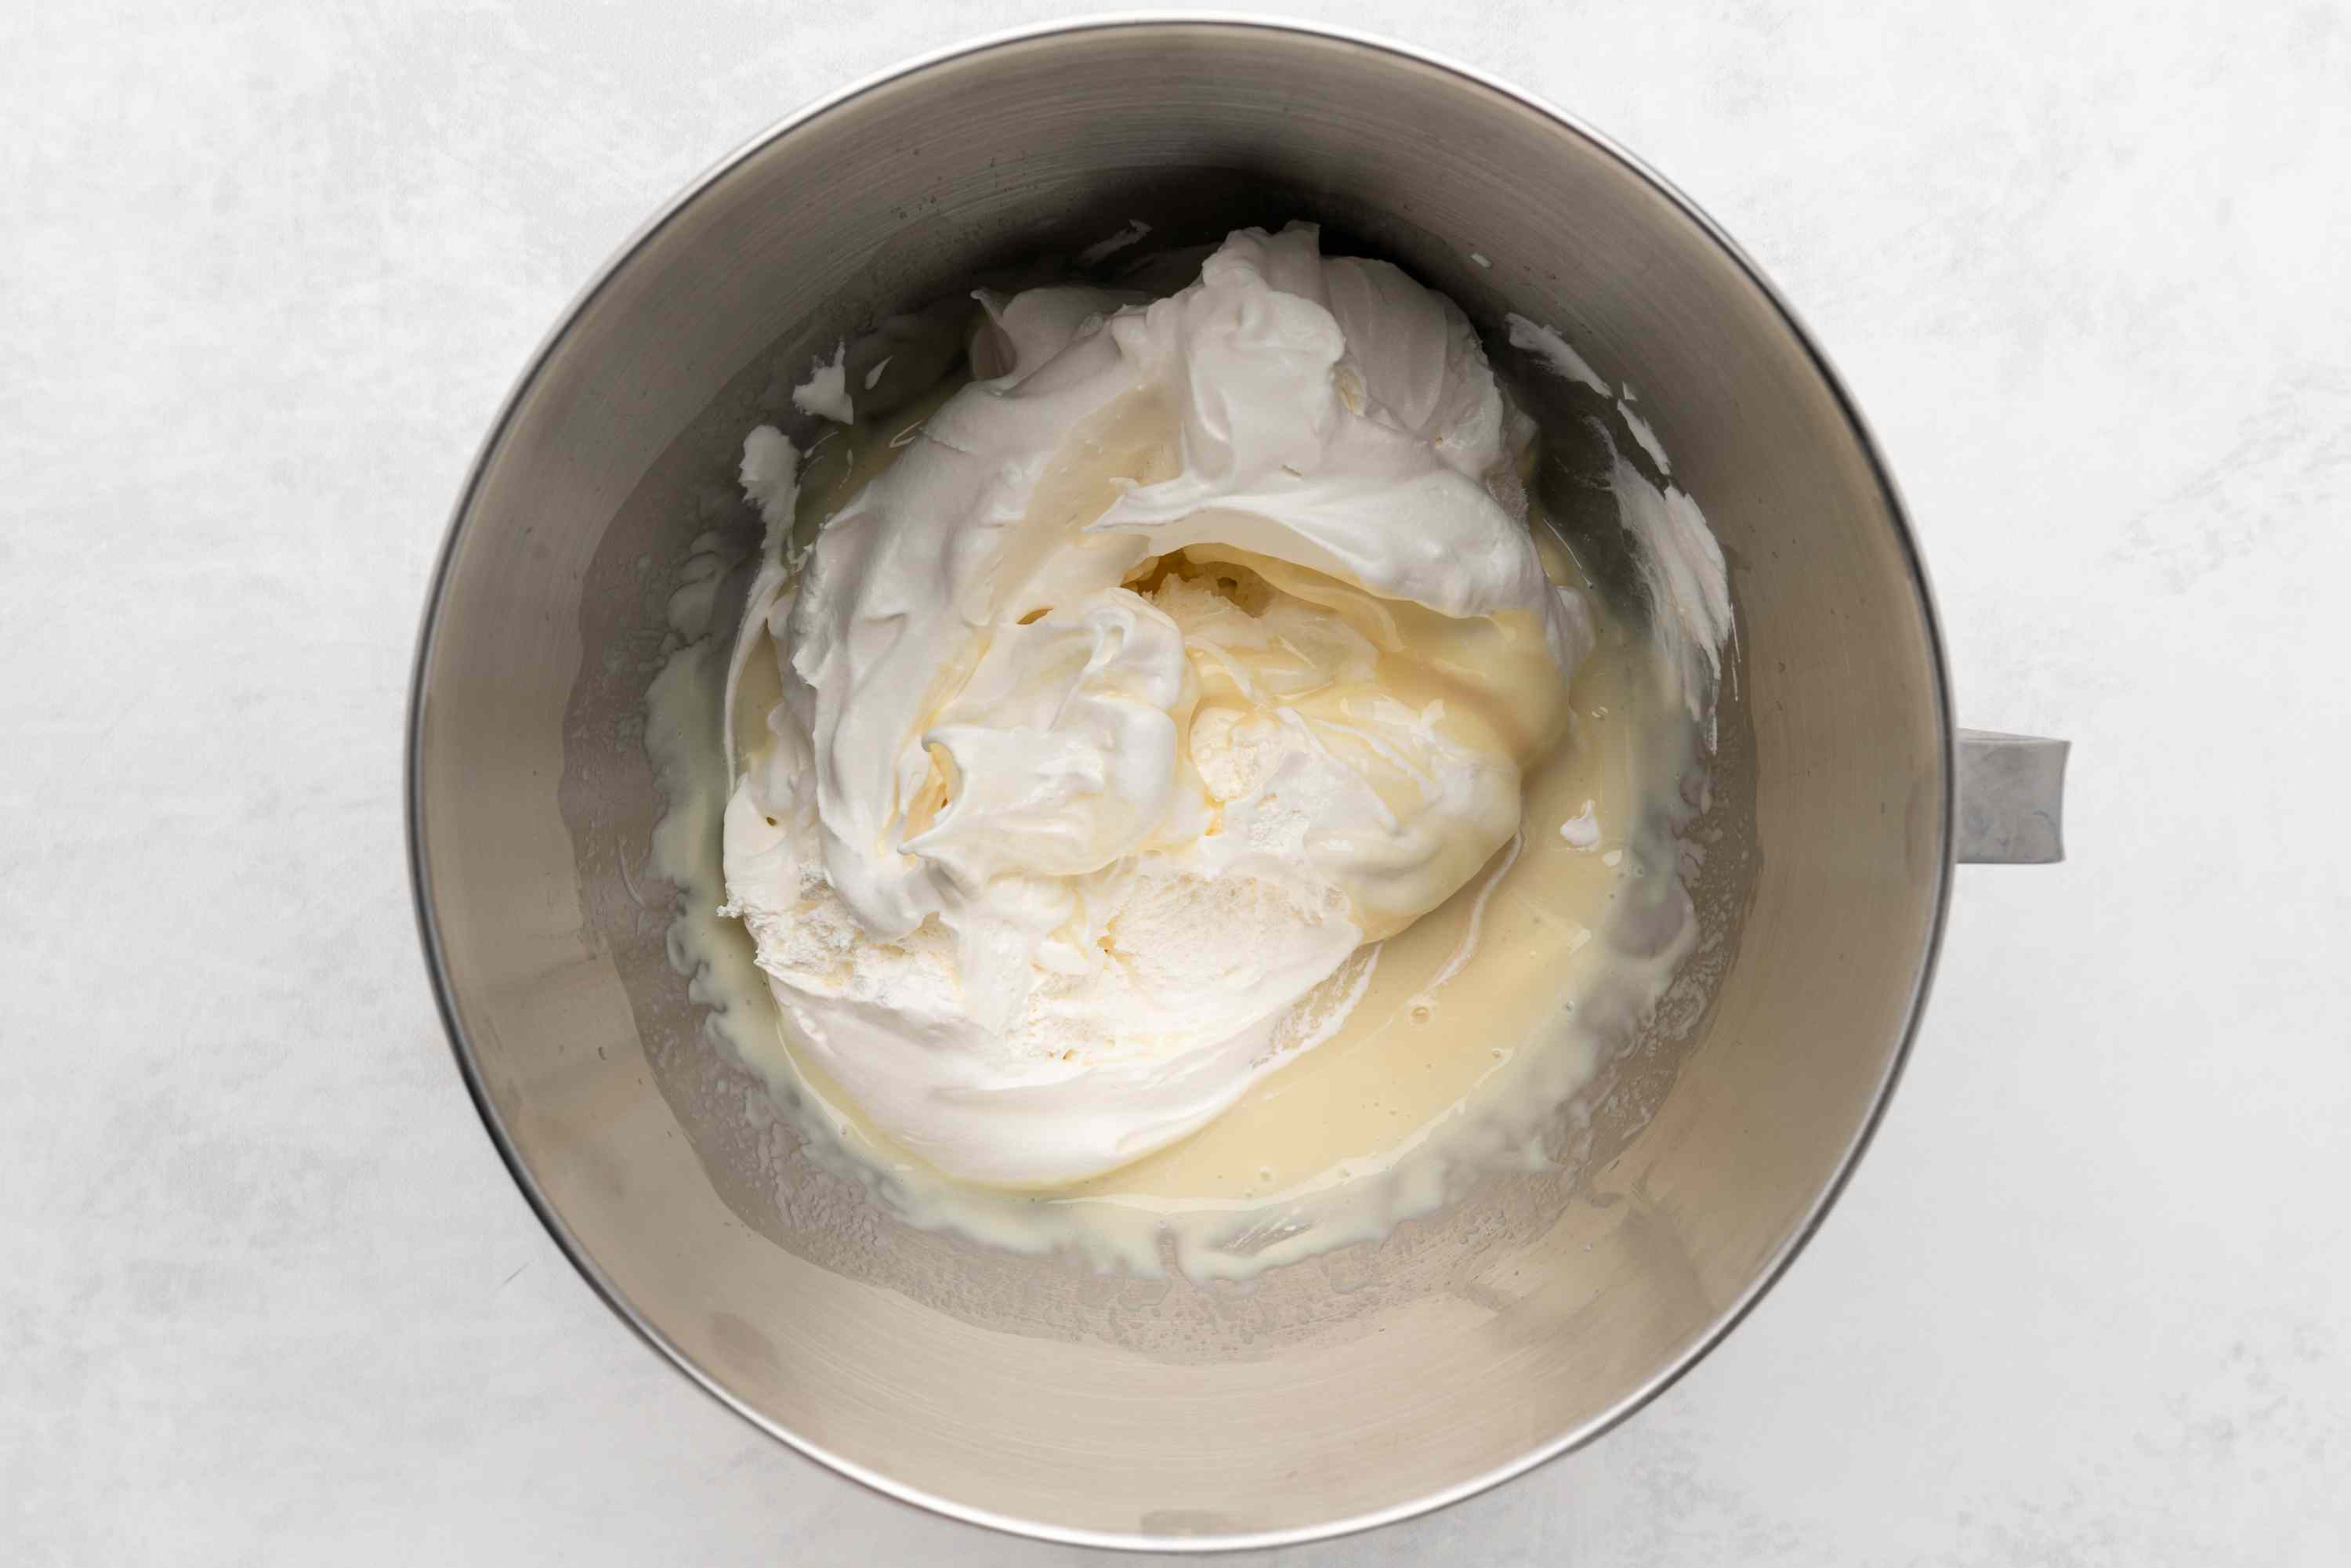 beat lemonade and condensed milk together and add whipped topping